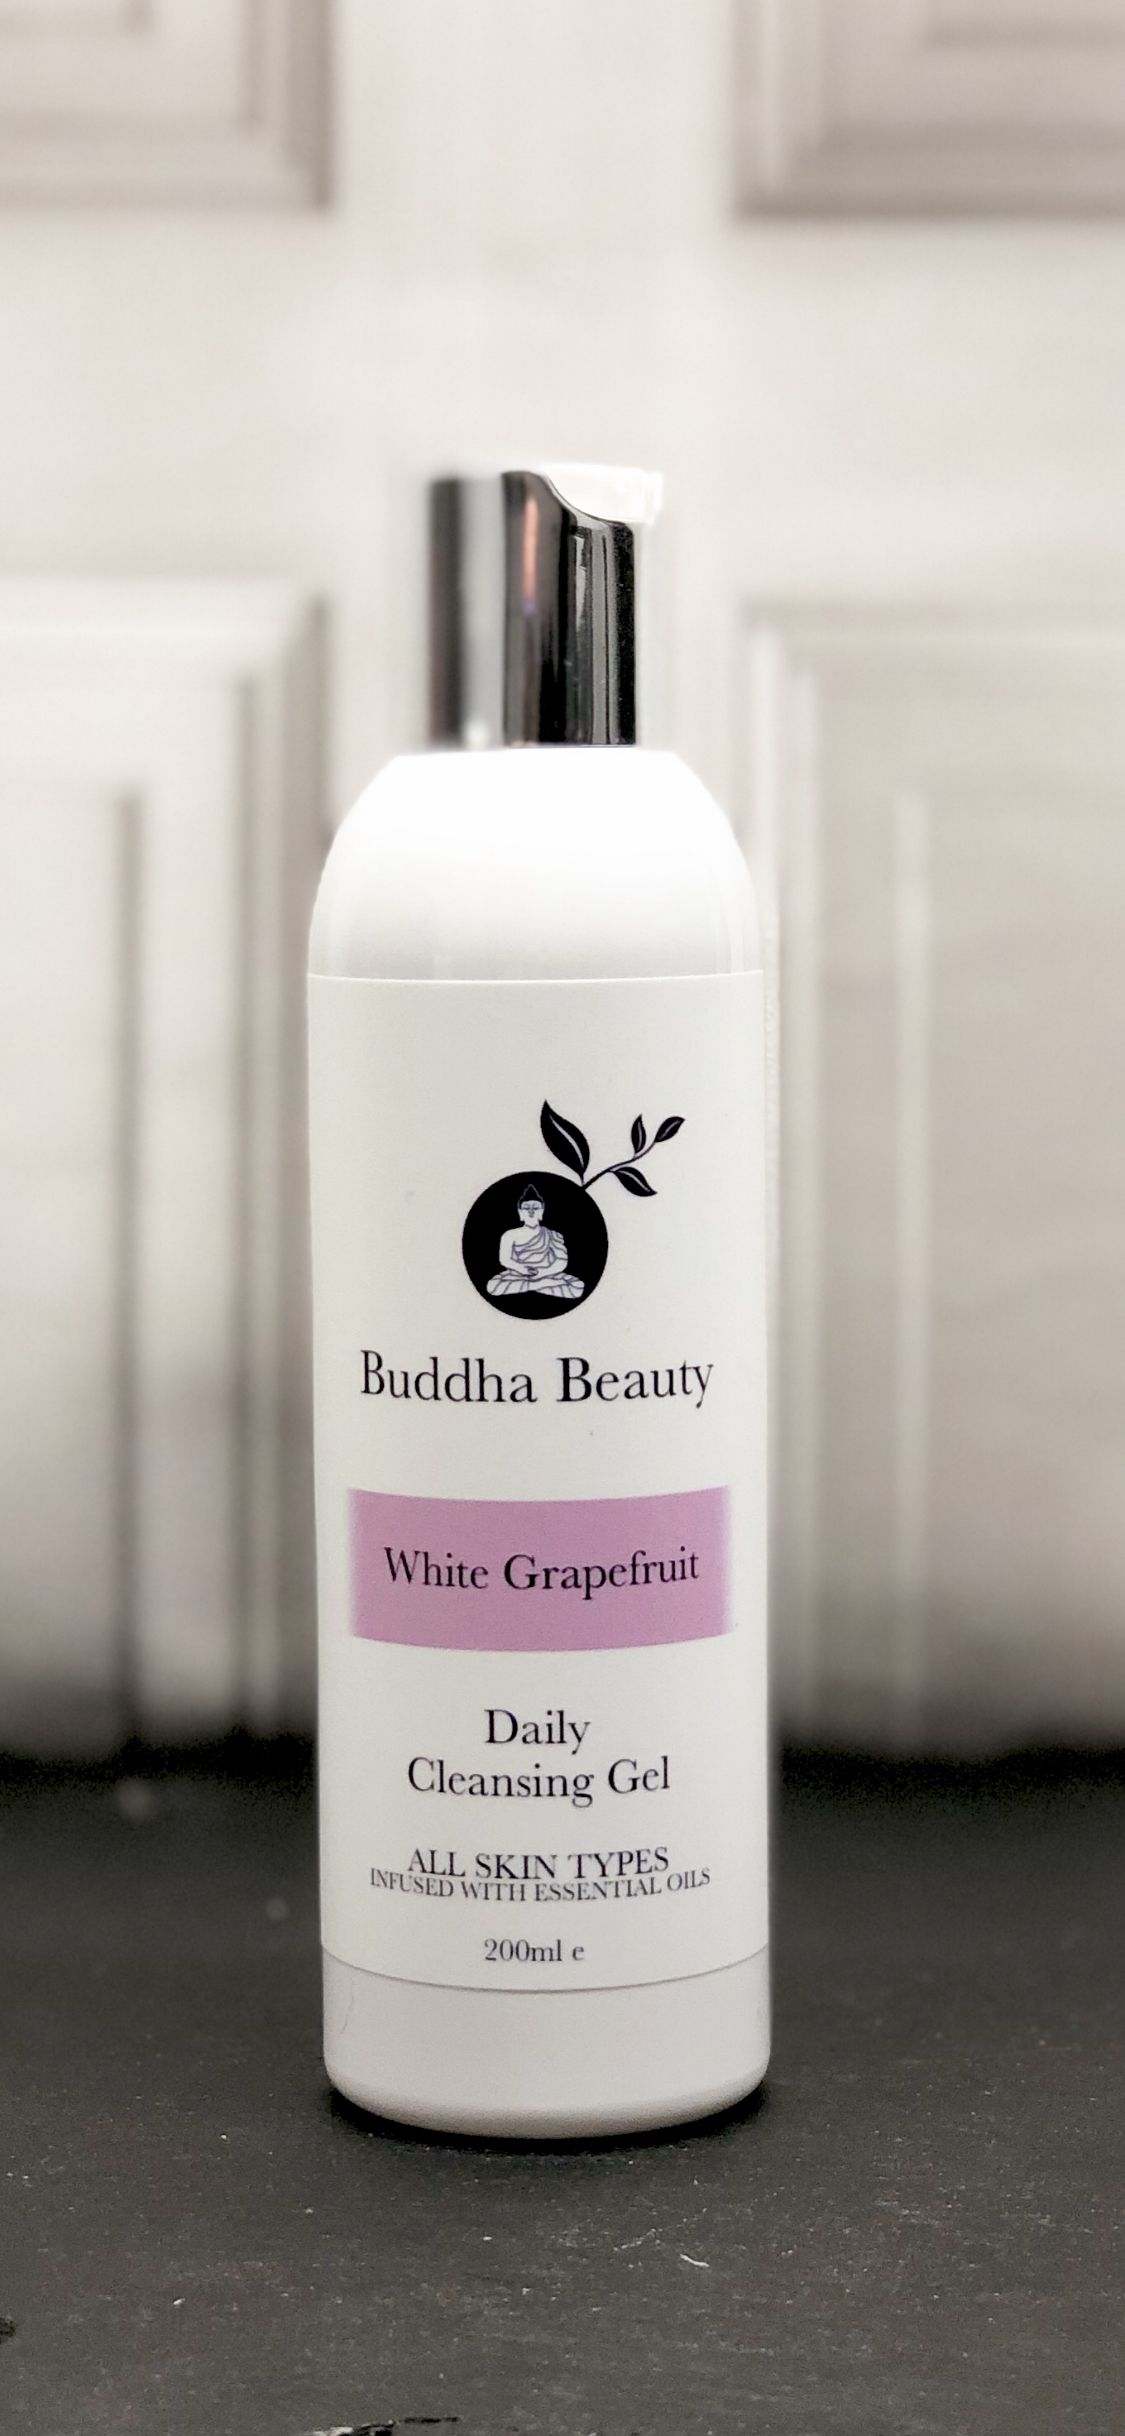 Our fresh foaming vegan gel cleanser has been blended with